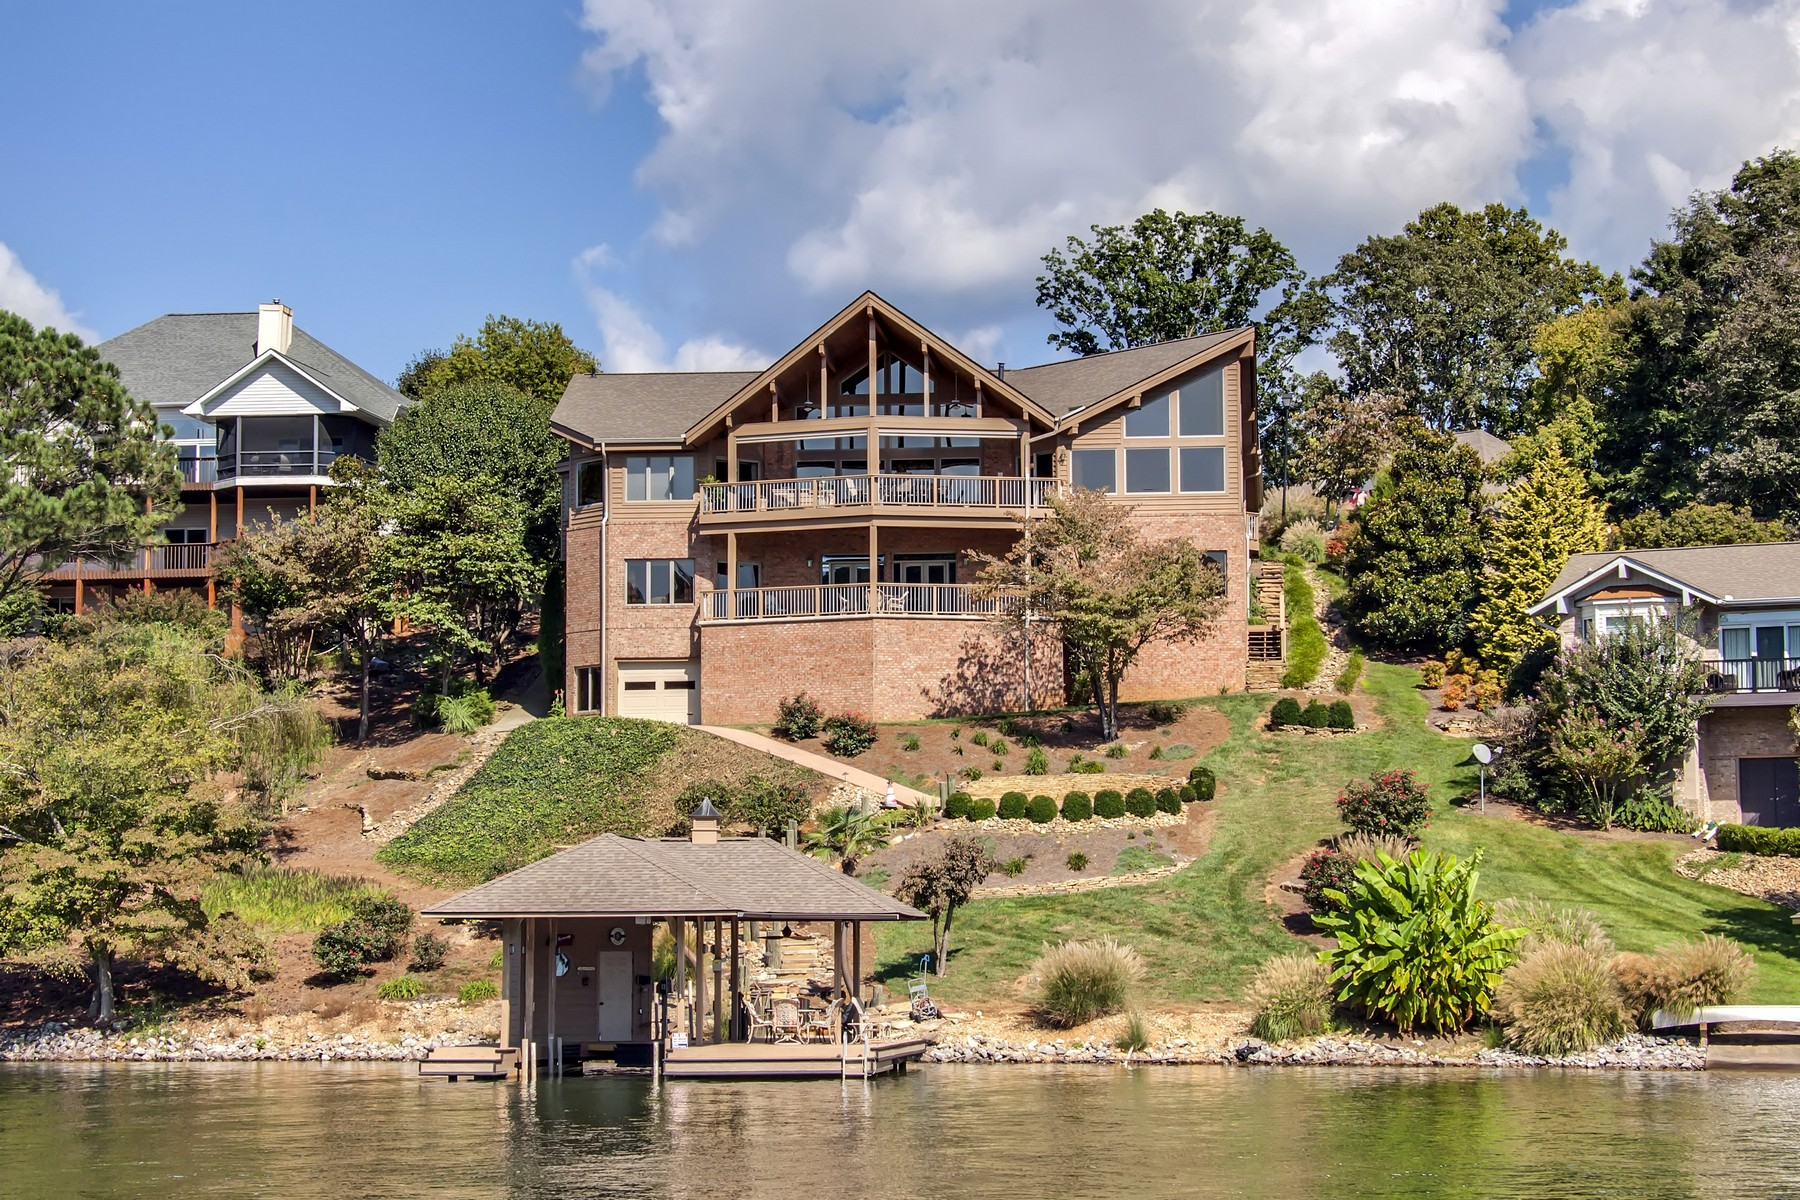 Single Family Home for Sale at Beautiful Custom Home on Tellico Lake 230 Tecumsah Way Loudon, Tennessee 37774 United States